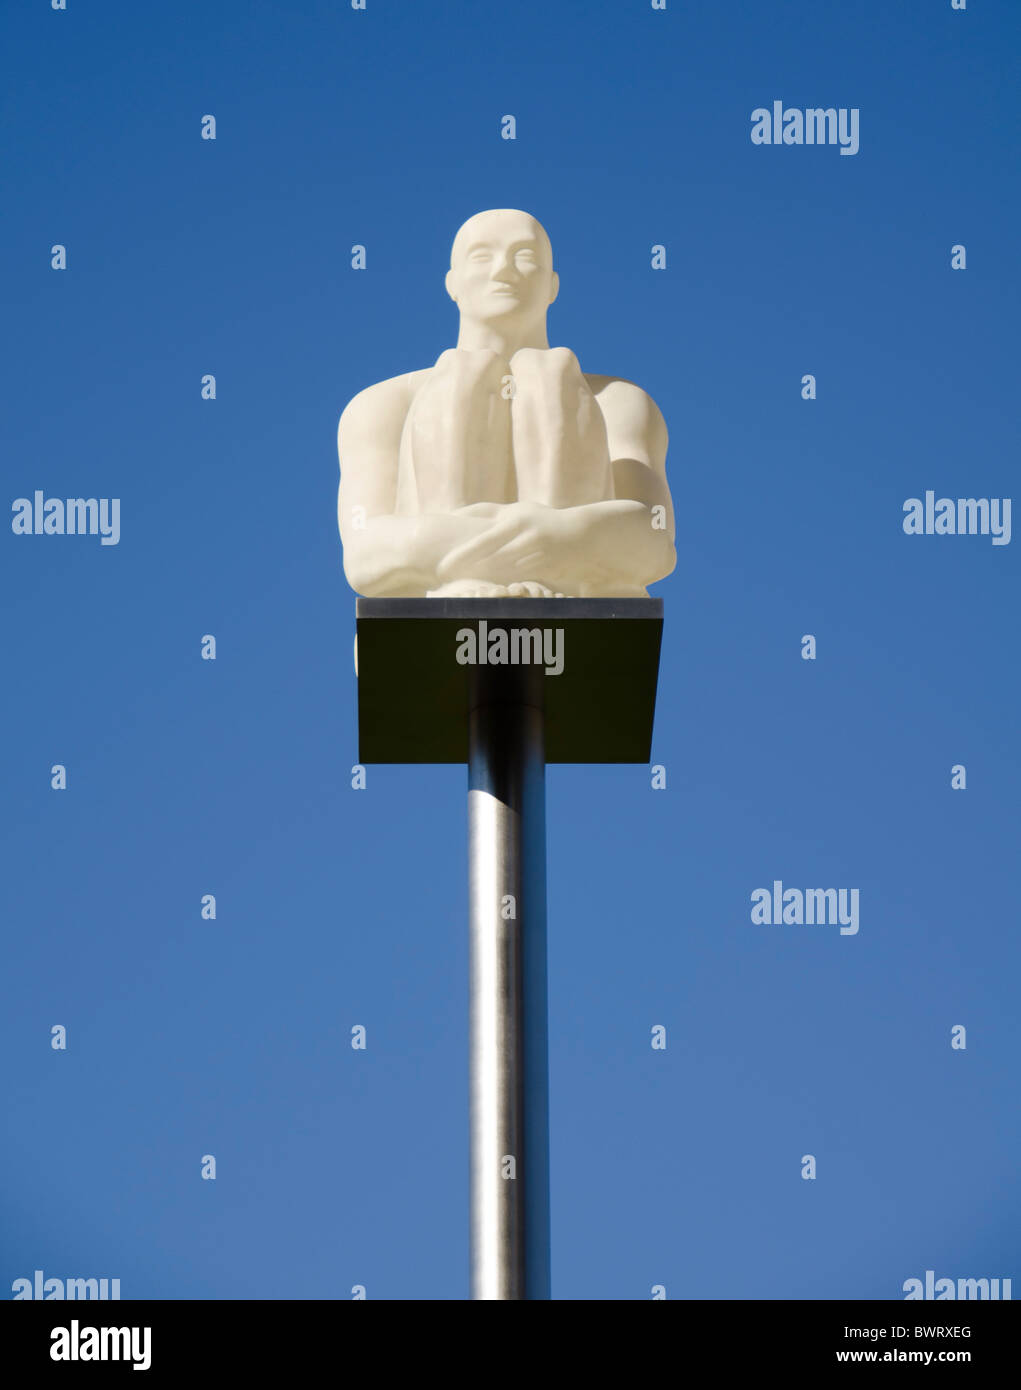 Lonely man sitting on a pole - Stock Image